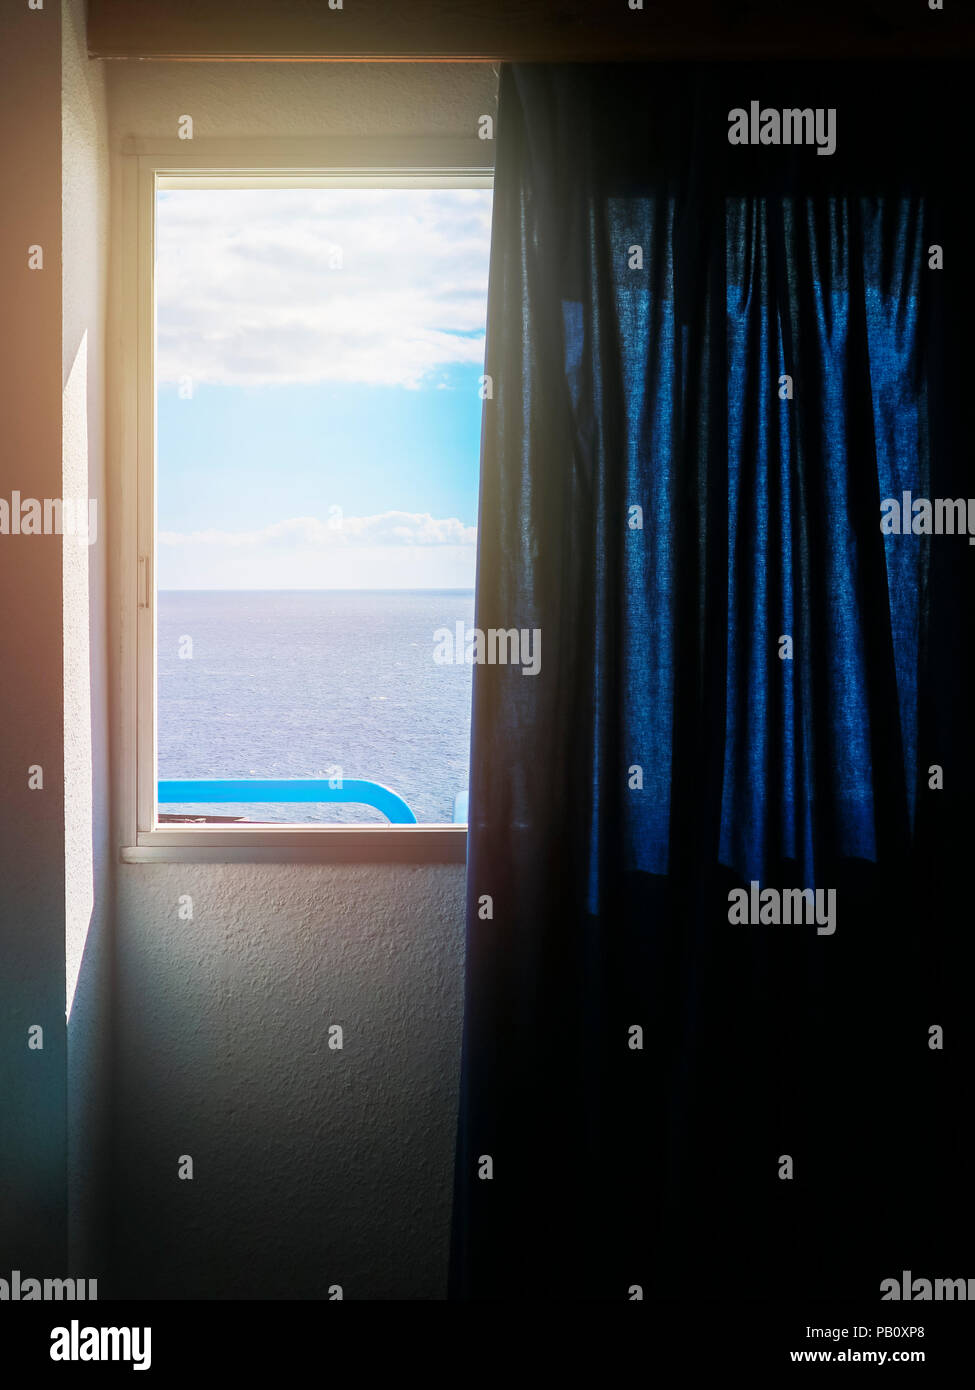 View from the window of hotel room, blue curtain, bright sunshine outside. - Stock Image